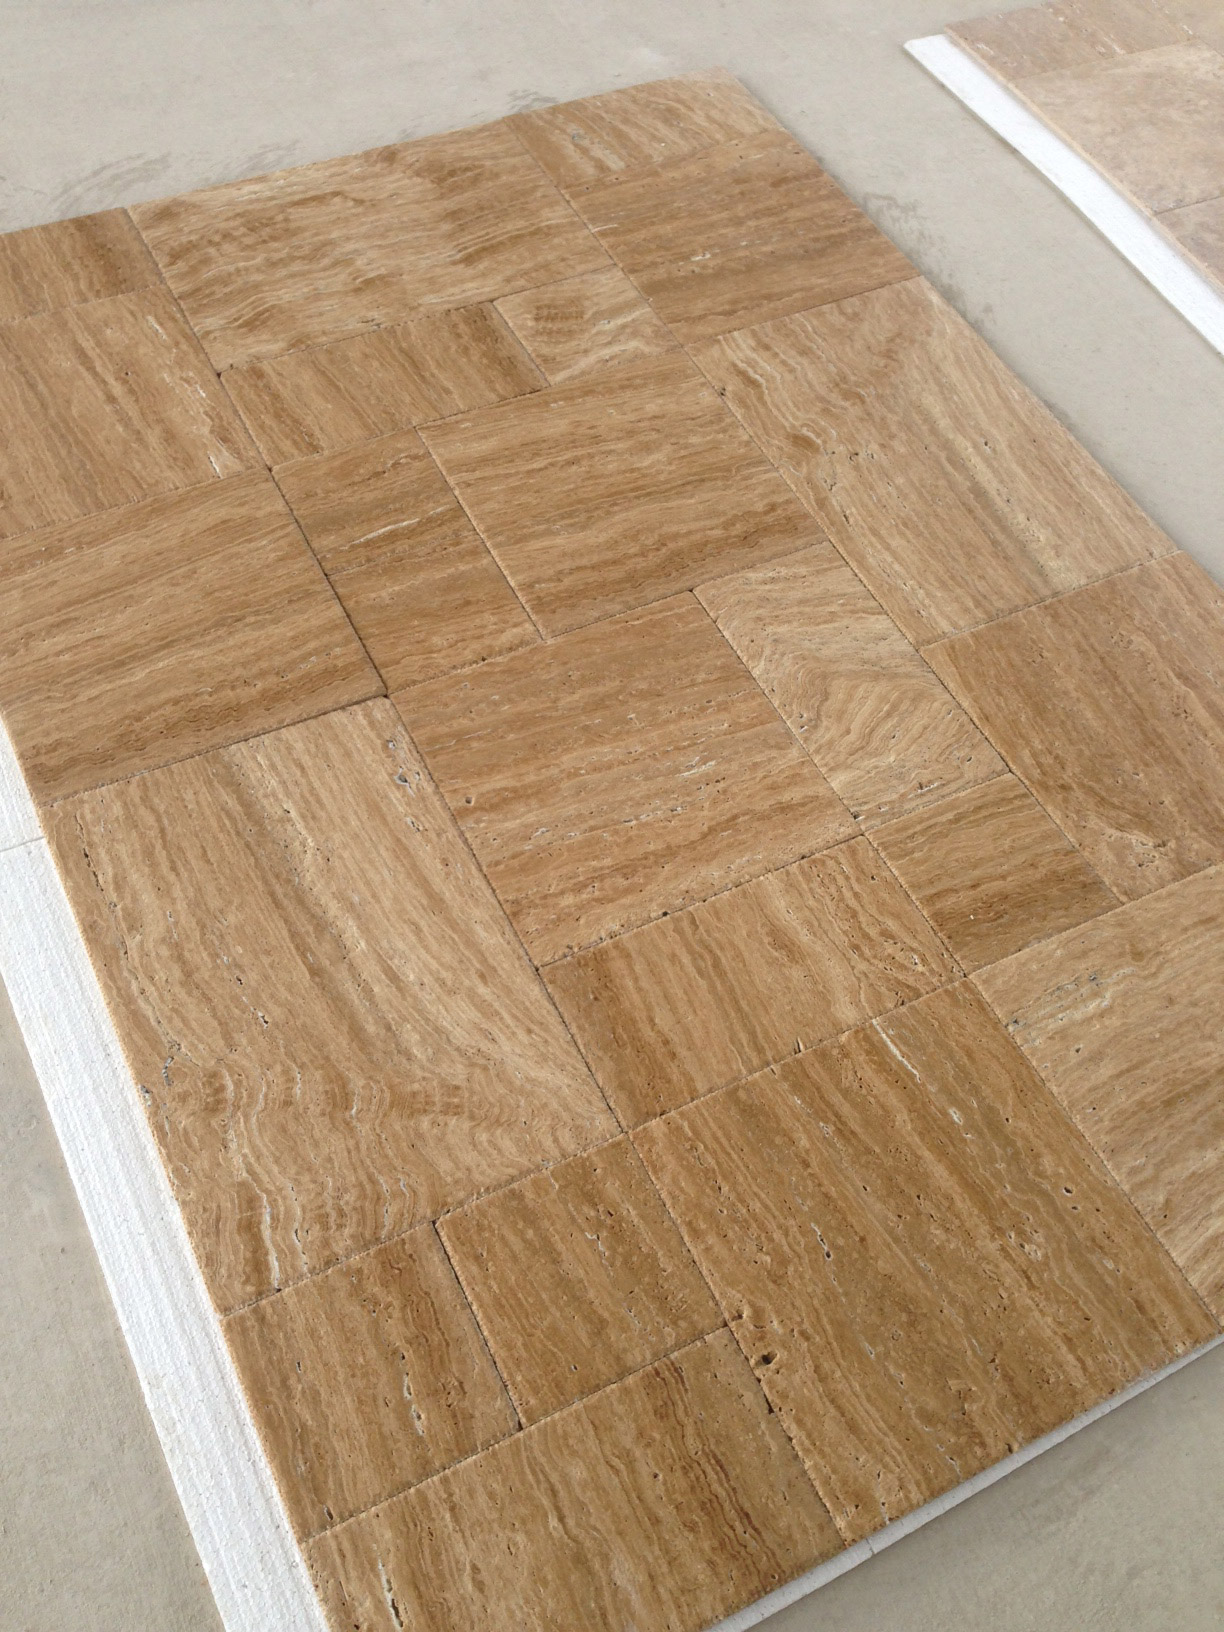 1.2cm-x-French-Pattern-Noce-VeinCut-Brushed-Chiseled-Travertine_Premium_1